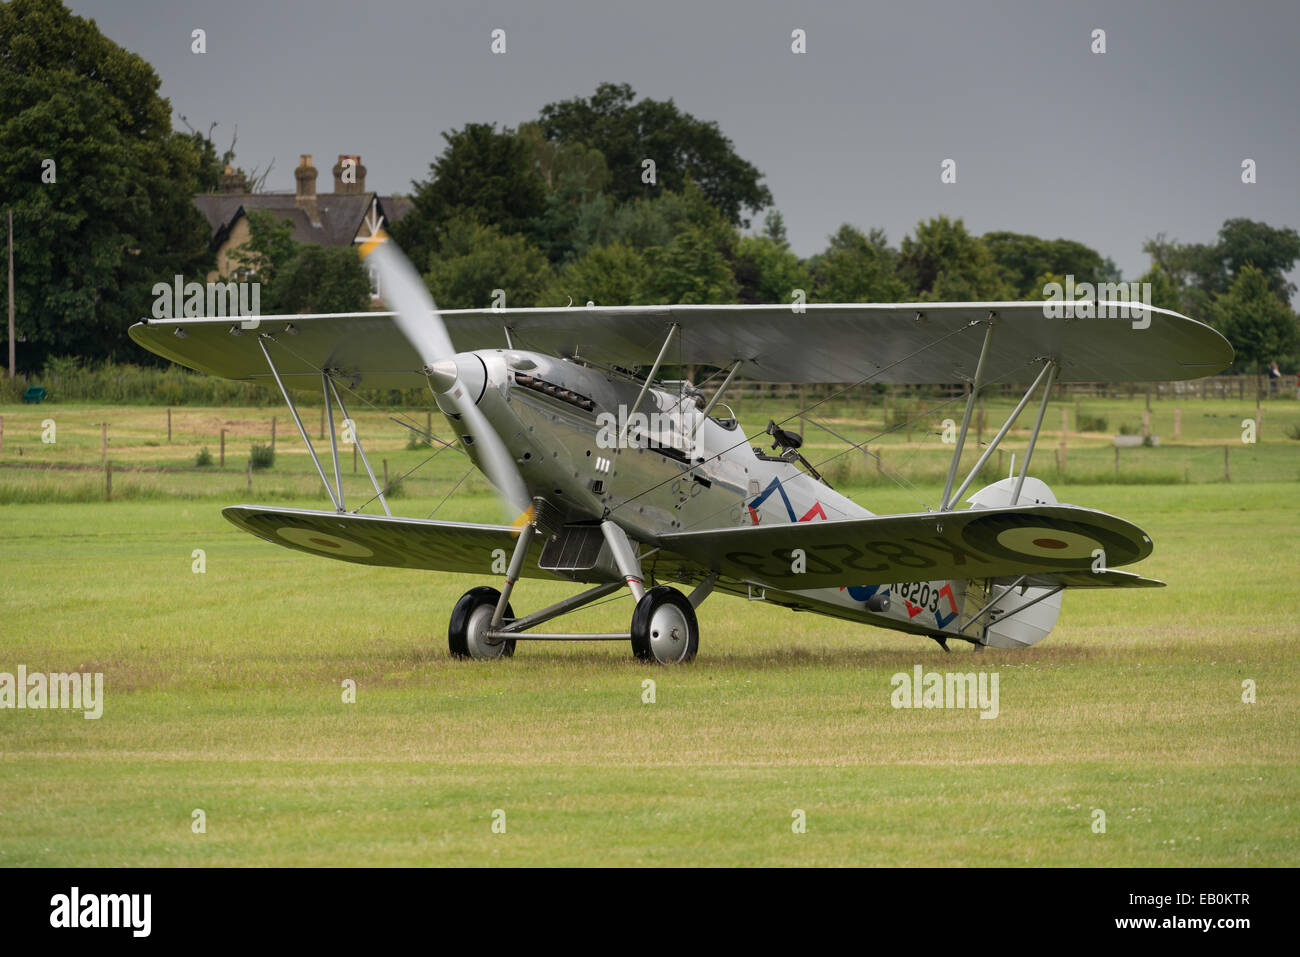 Biggleswade, UK - 29 June 2014: A  vintage  Hawker Demon bi-plane on display at the Shuttleworth Collection air - Stock Image